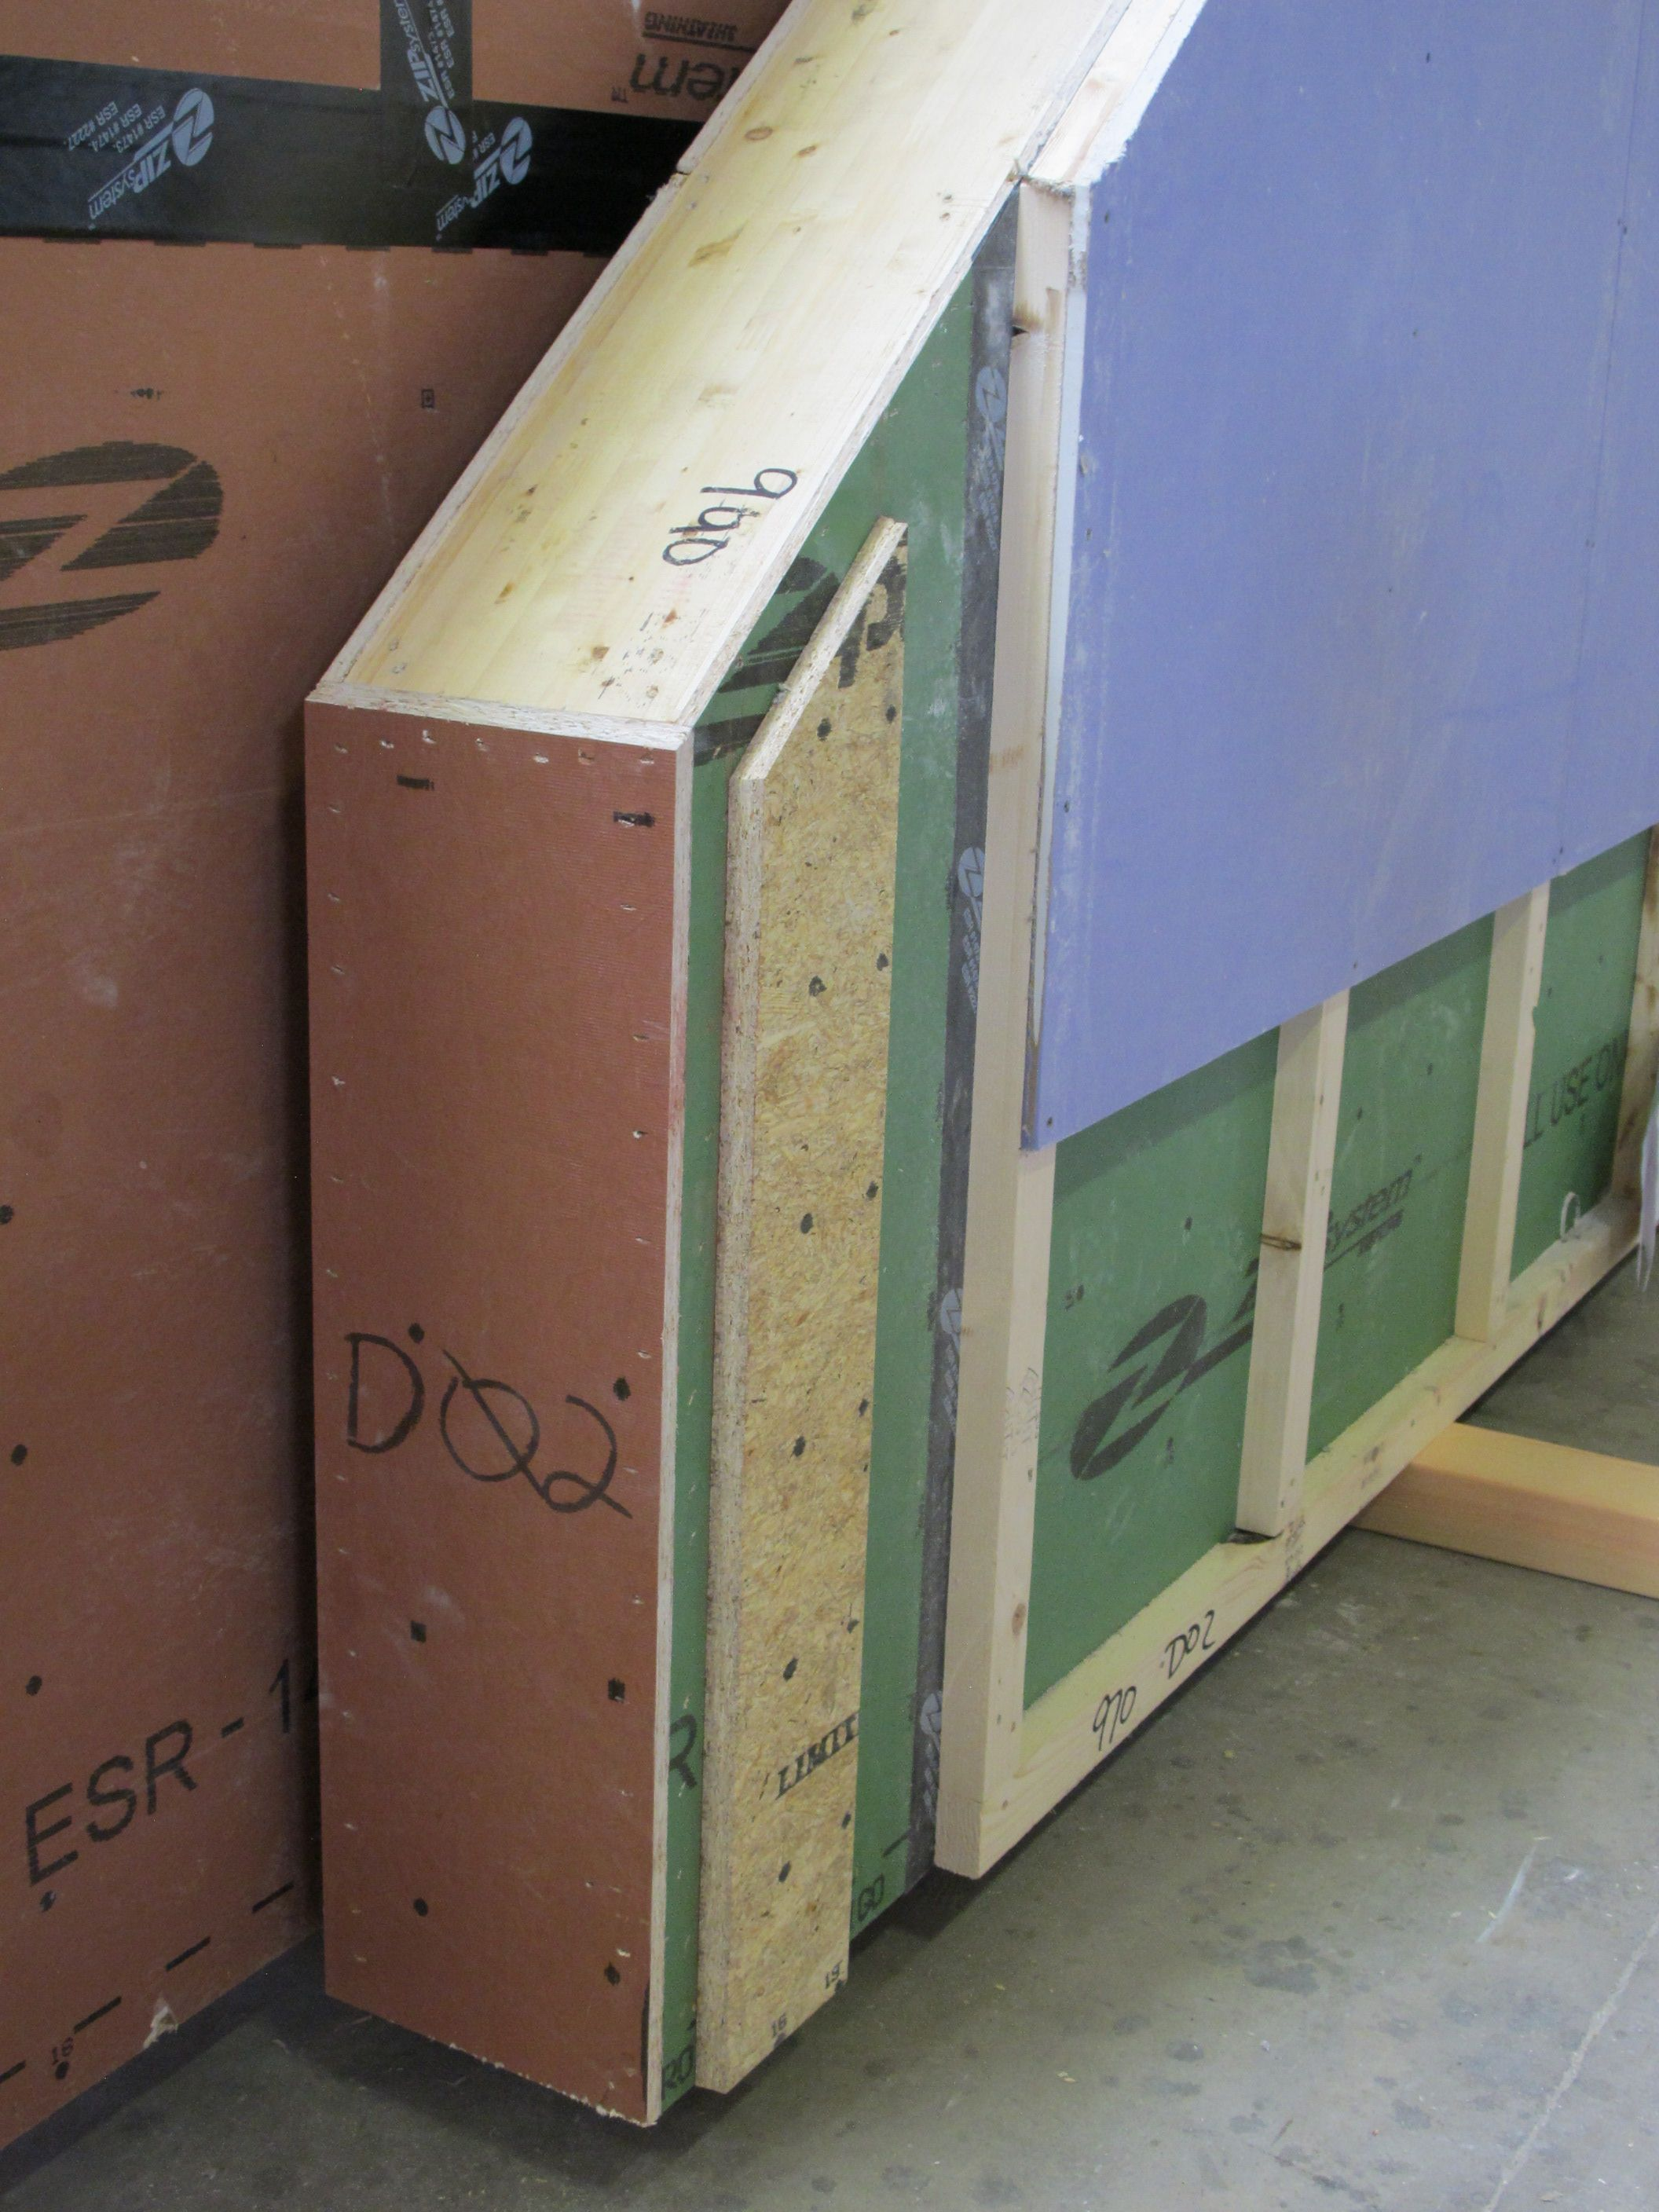 In Walpole New Hampshire Bensonwood Homes Is Manufacturing Wall Panels That Include An Interio Interior Wall Insulation Bathroom Wall Panels Insulated Panels